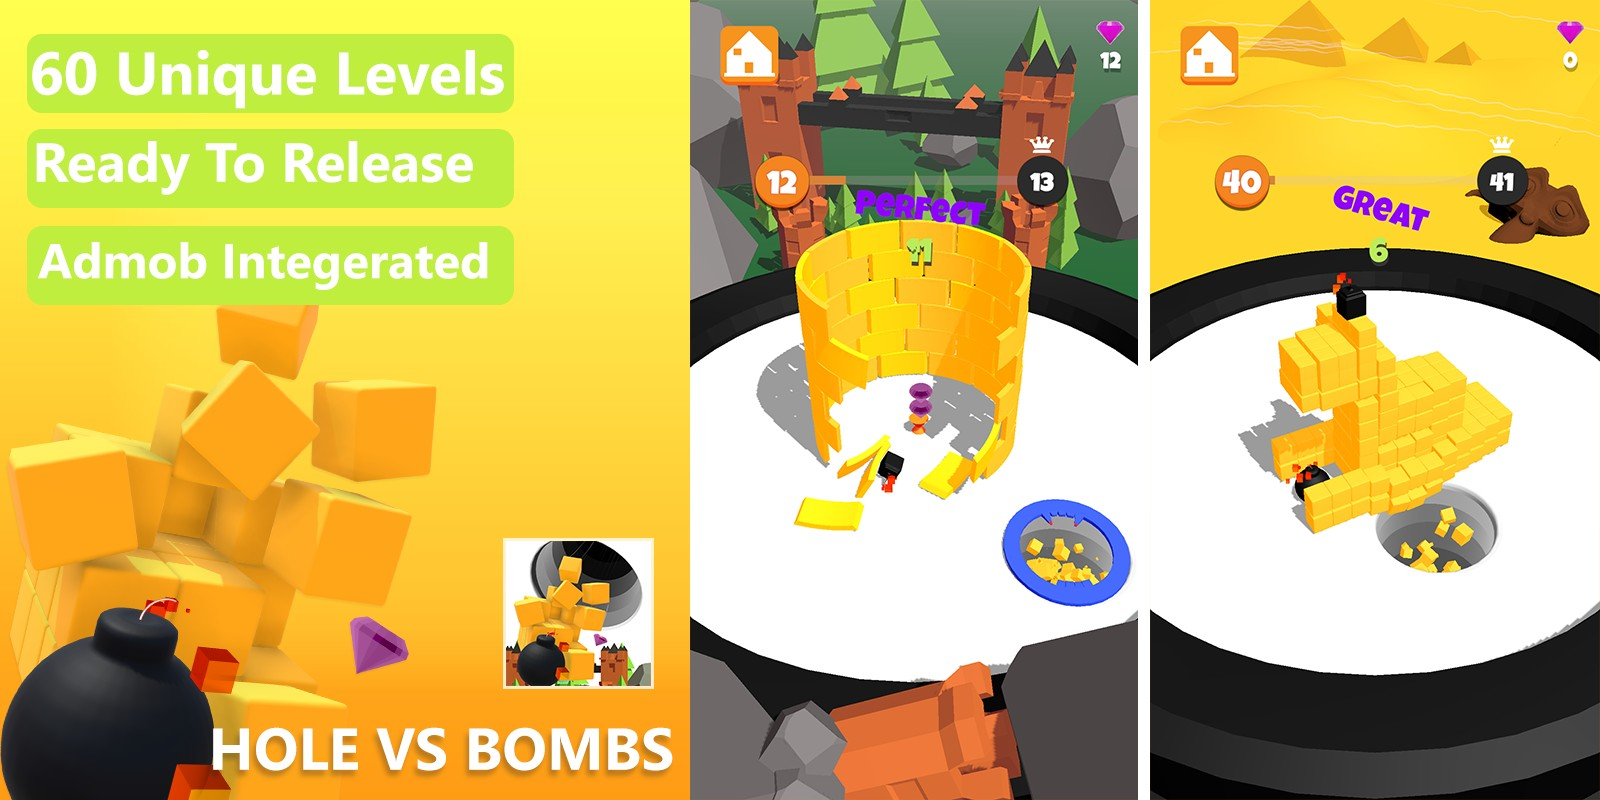 Hole vs Bombs Game - Unity Complete Project With Admob Ads for Android and iOS